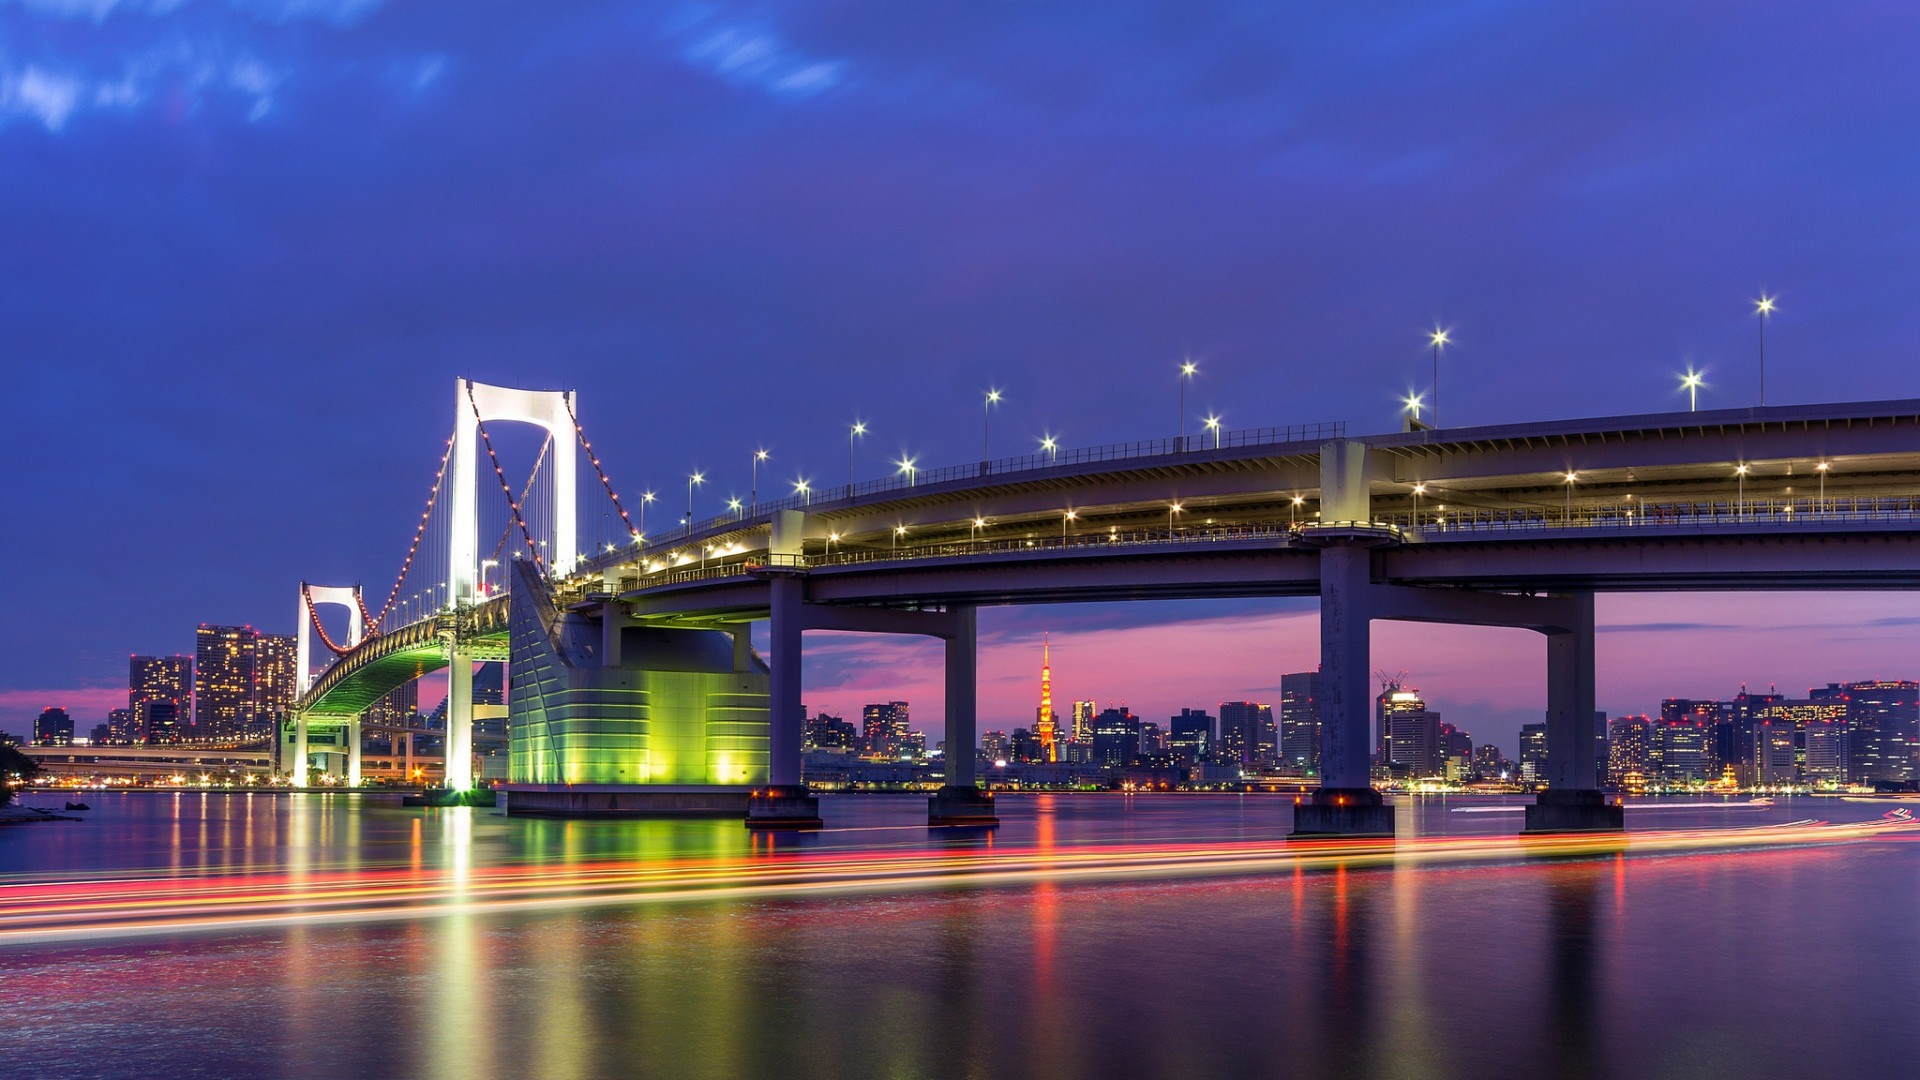 Tokyo Capital City Wallpaper with Colorful Lightings